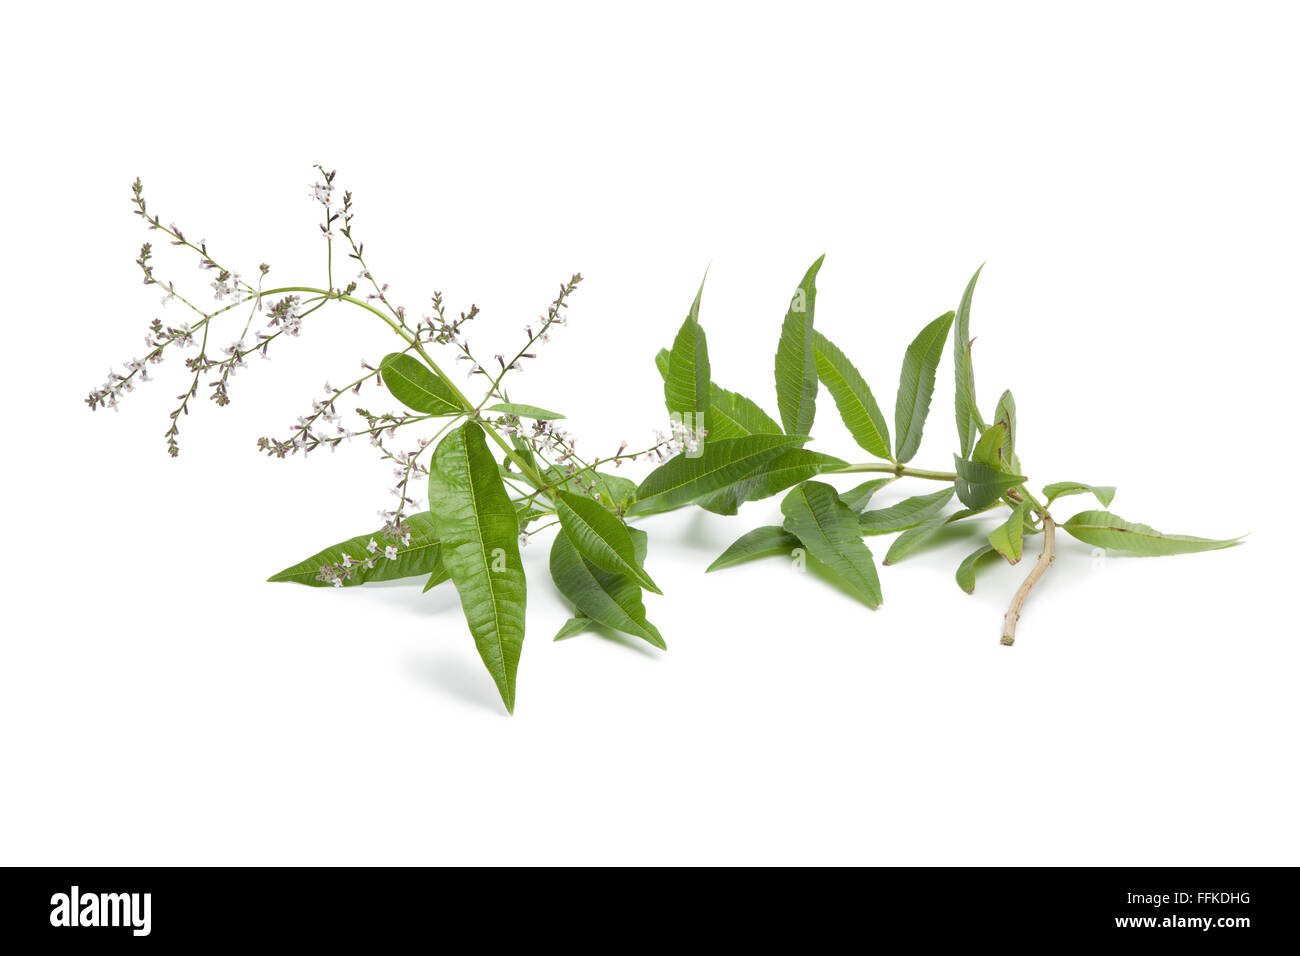 Twig of flowering verveine on white background - Stock Image